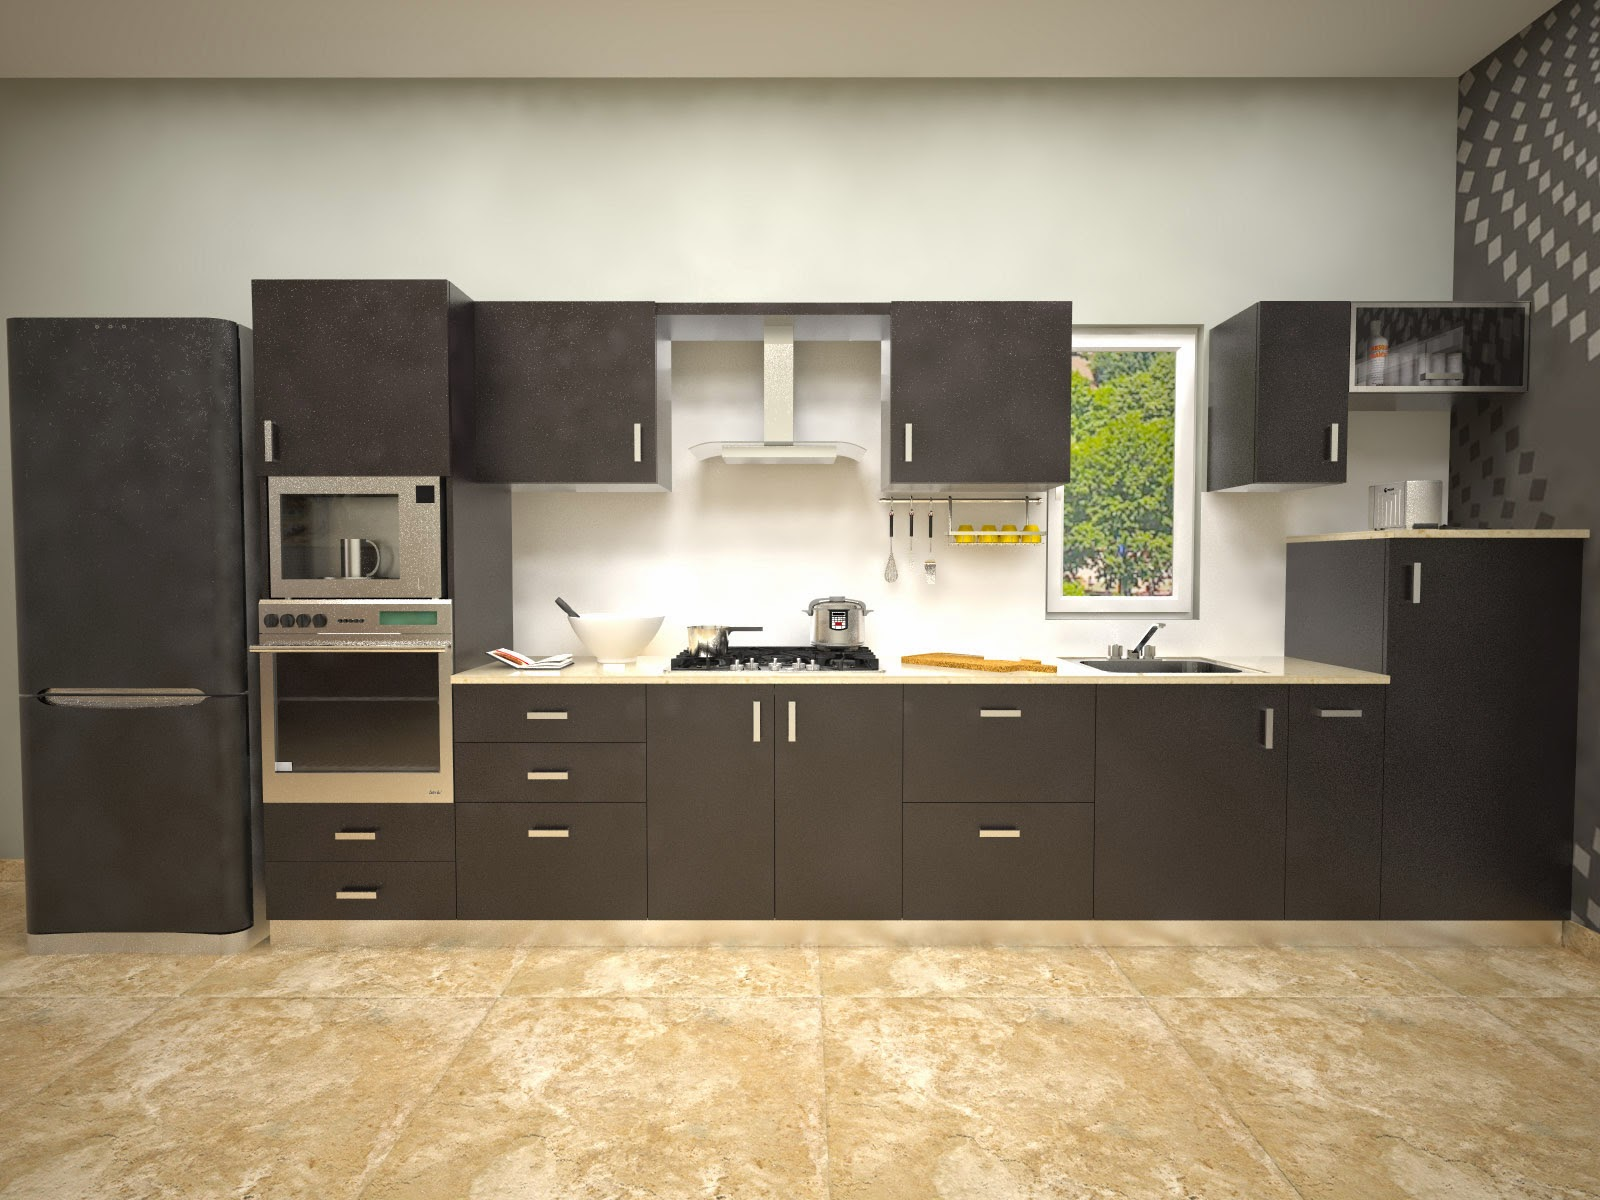 Http Aamodakitchen Blogspot Com 2015 05 Straight Modular Kitchen Html